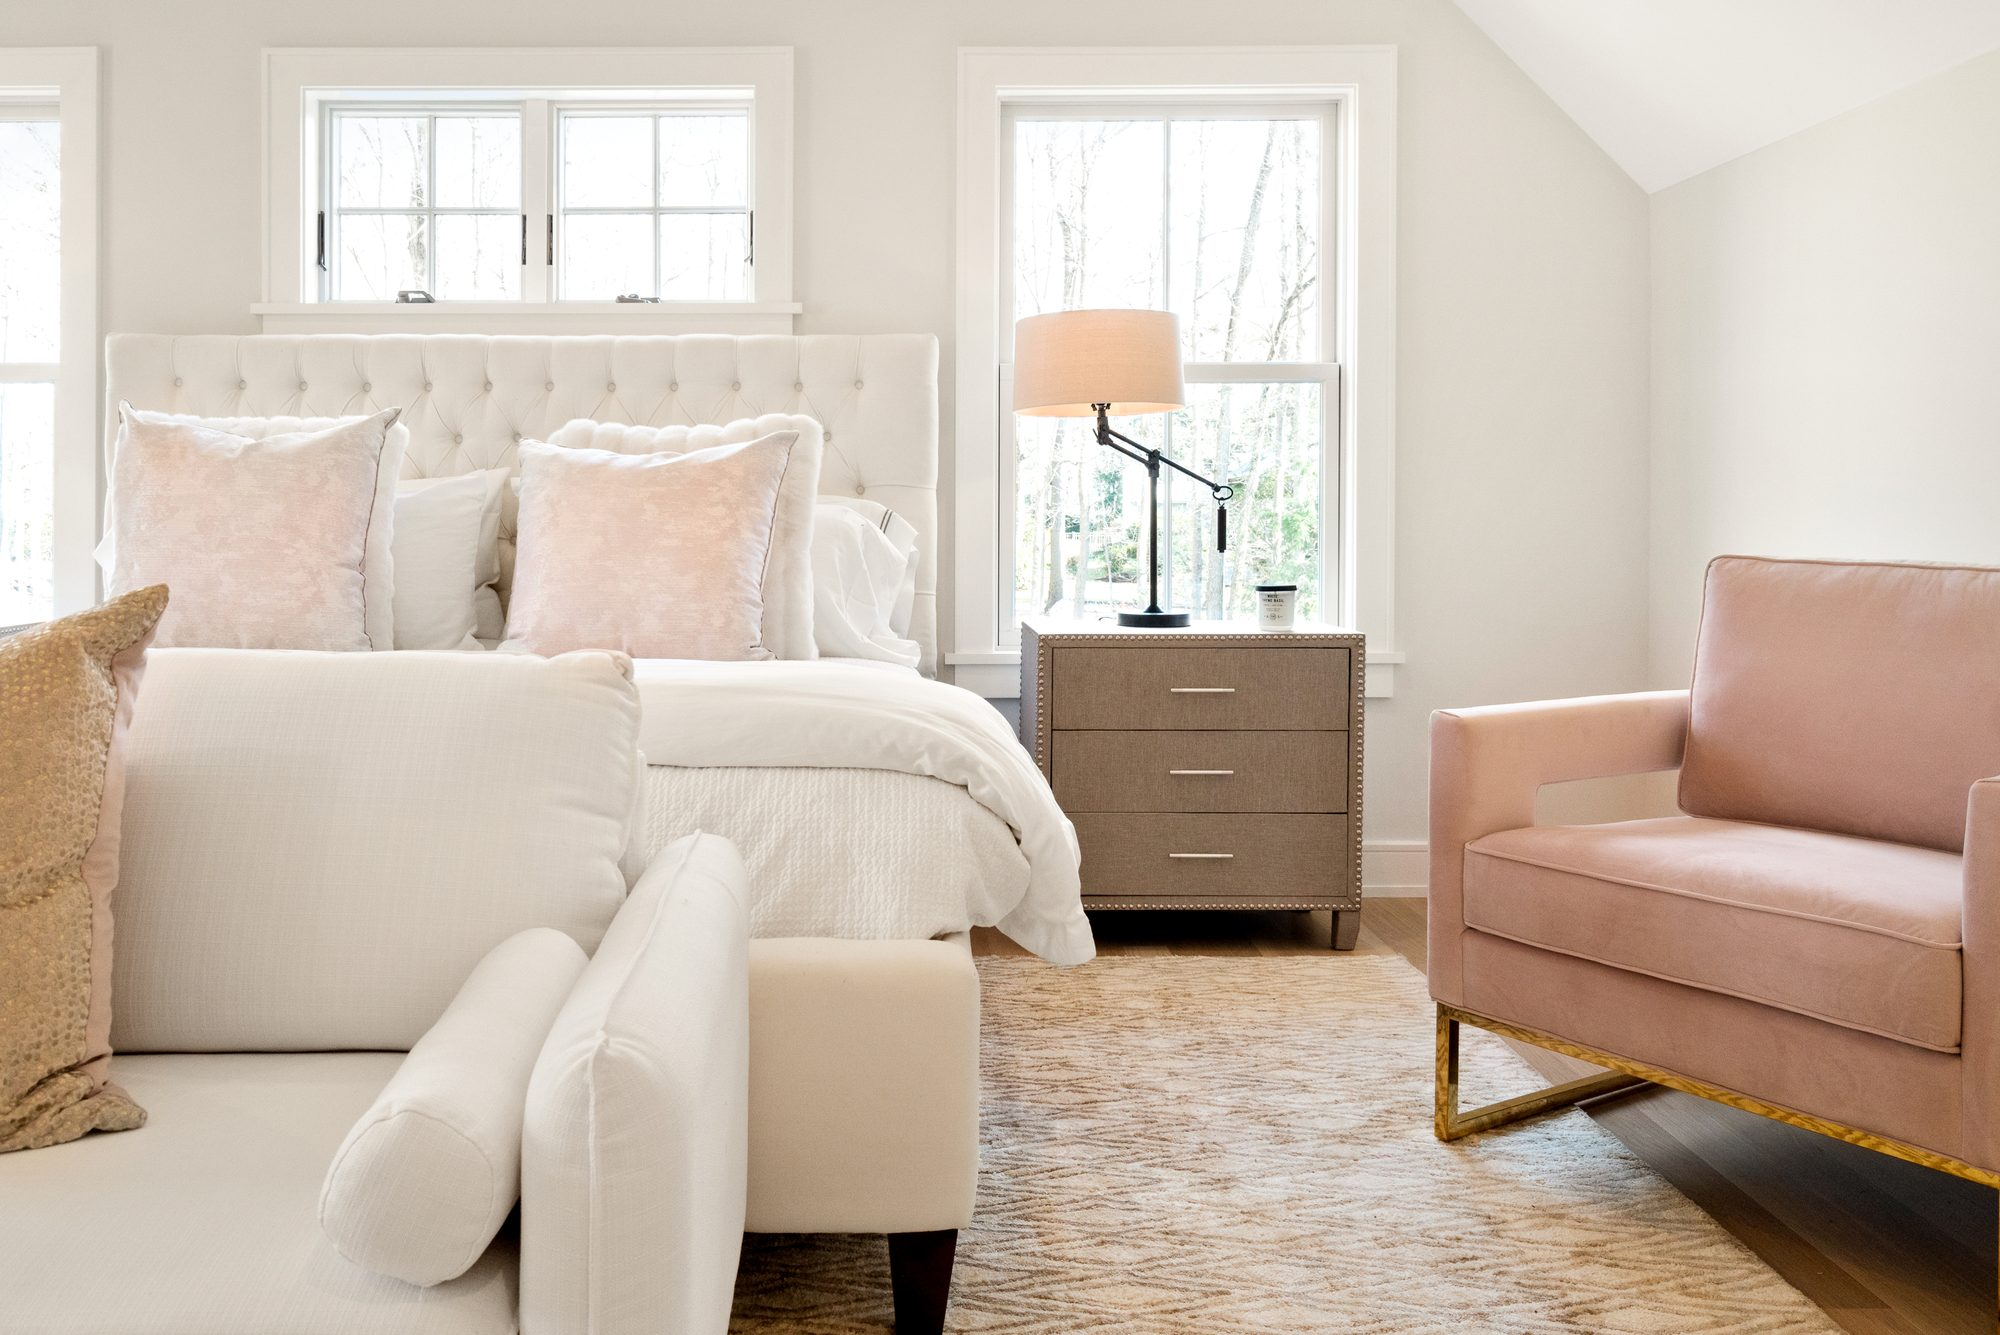 beautiful master bedroom design salmon pink decor with cream and tan